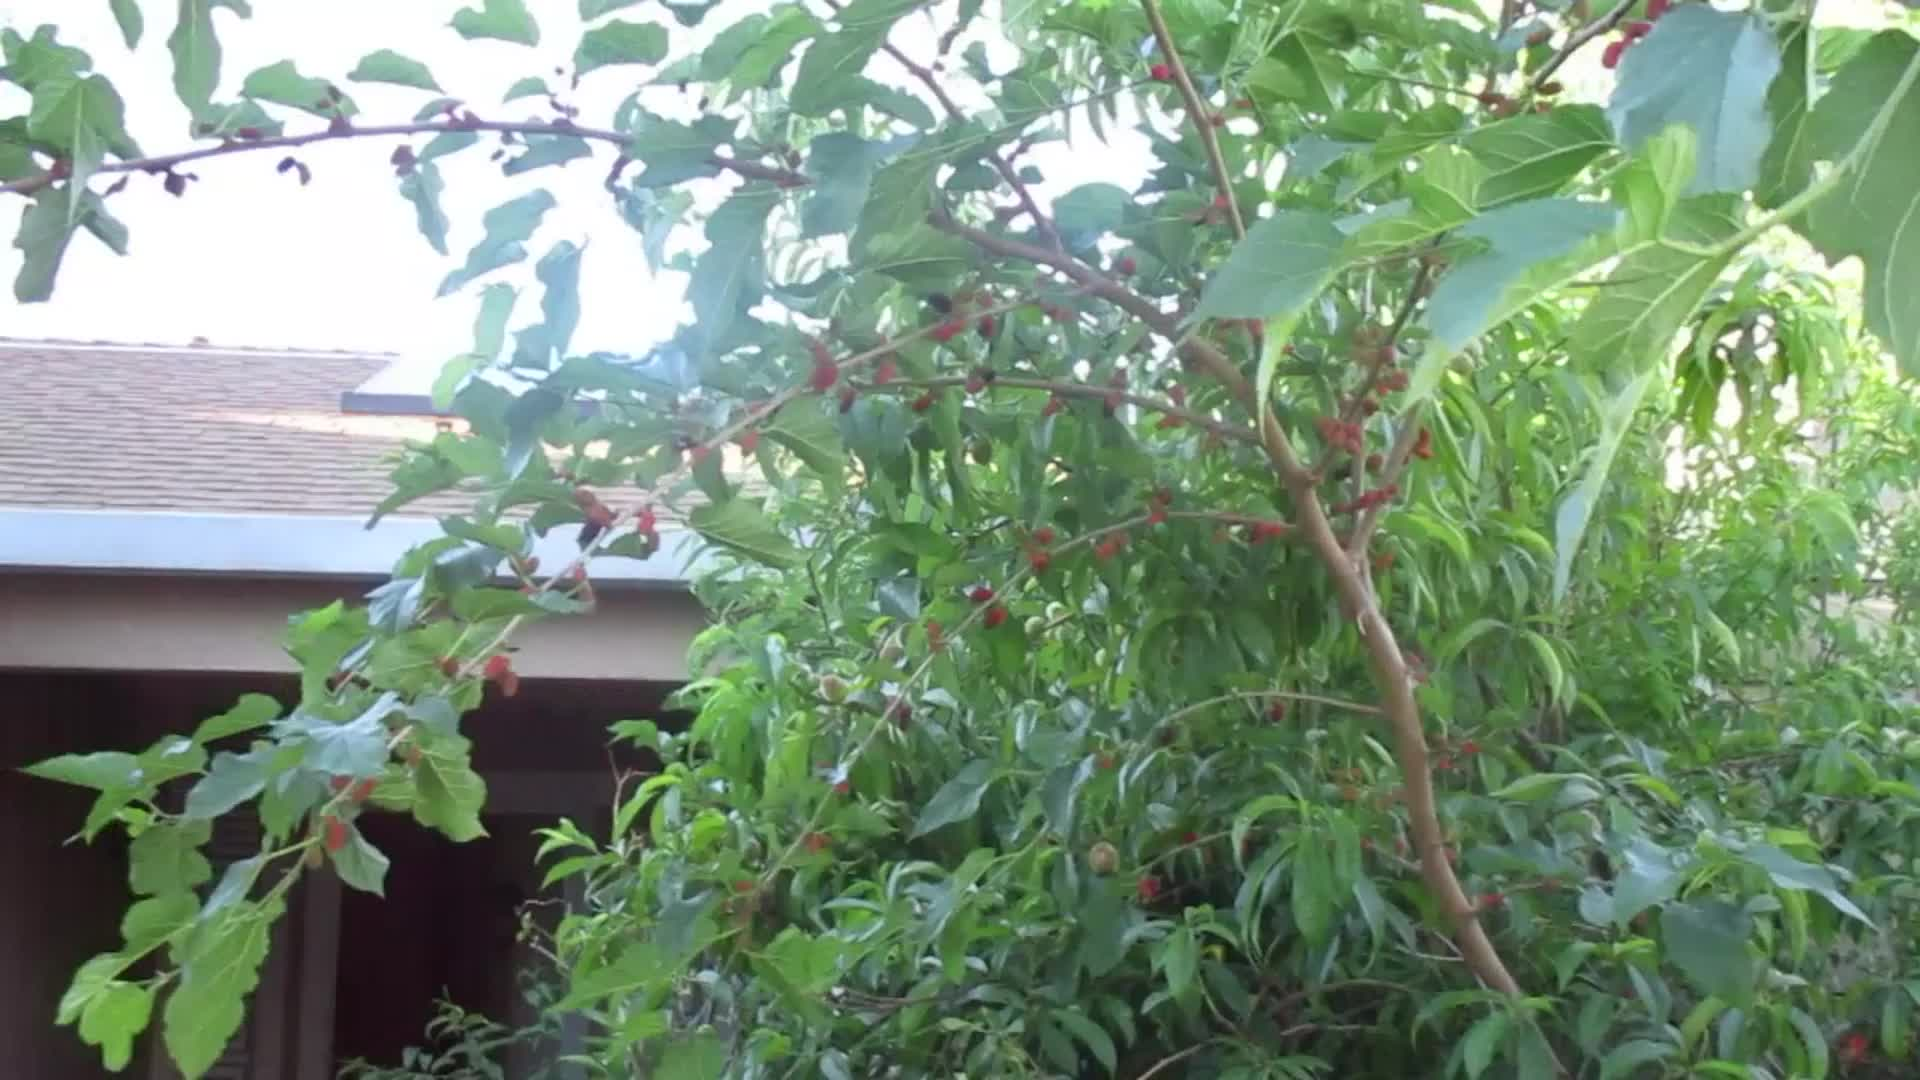 MULBERRY TREE I GREW FROM CUTTING